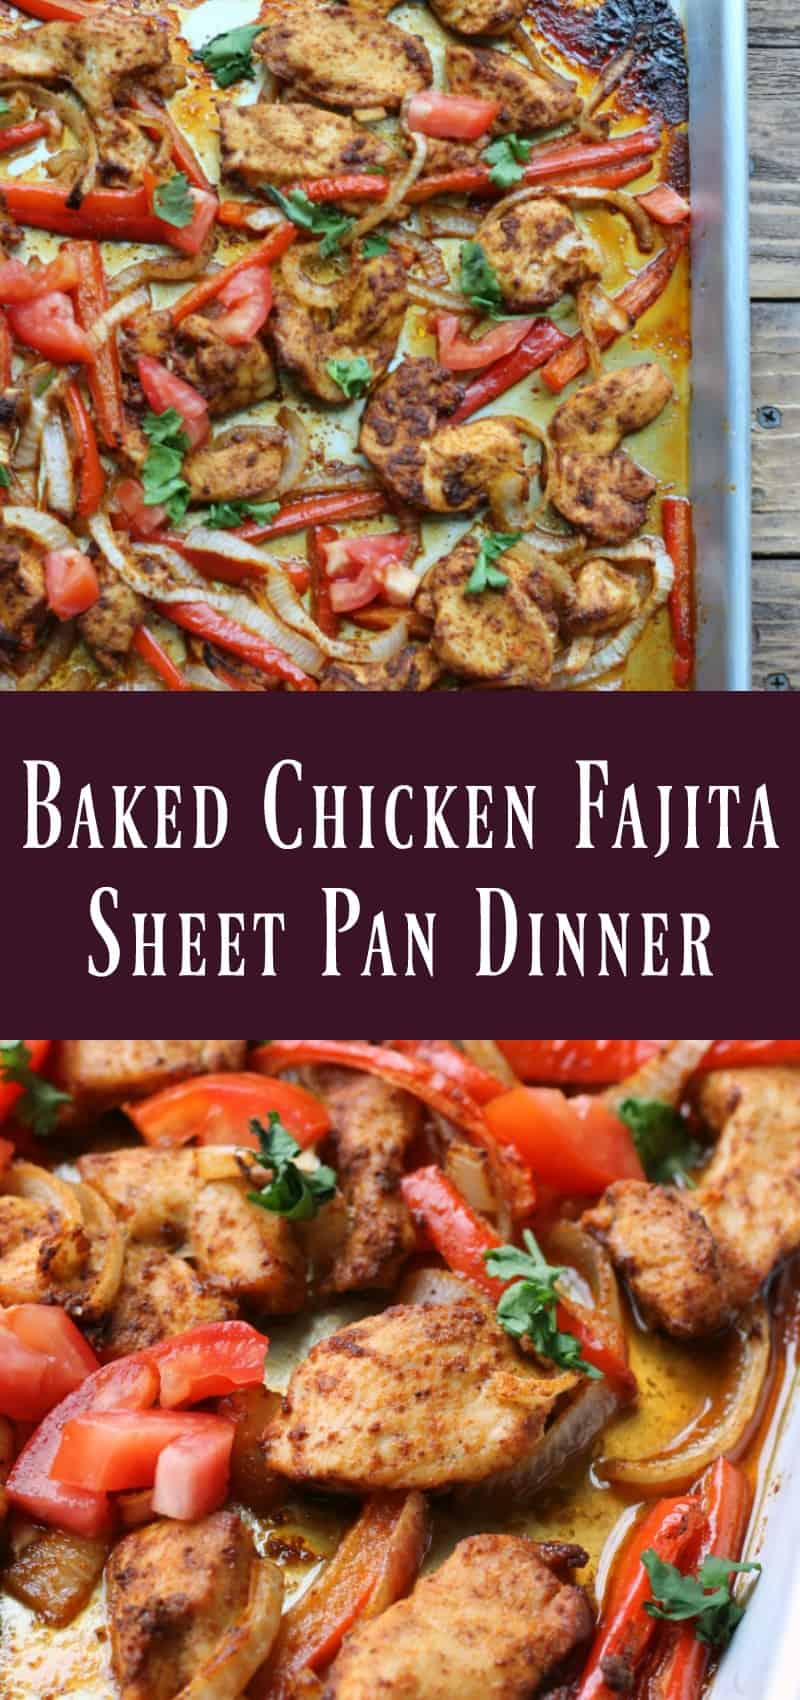 Healthy Baked Chicken Fajita Sheet Pan Dinner